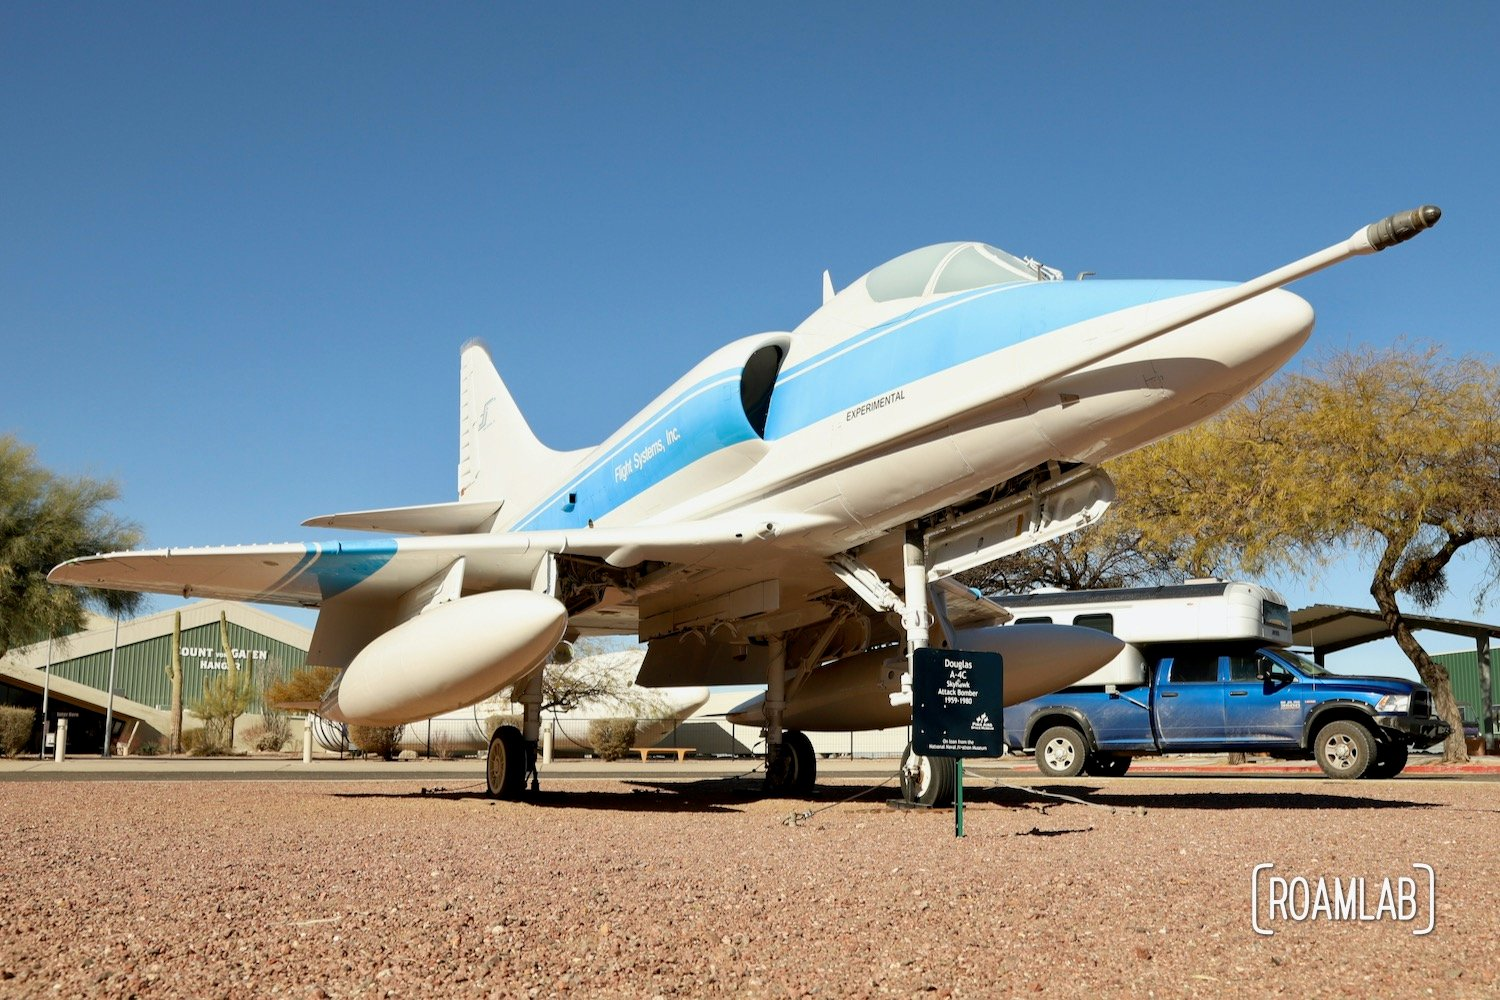 Douglas A-4C Skyhawk Attack Bomber (1959-1980) and a 1970 Avion C11 truck camper in the Pima Air & Space Museum